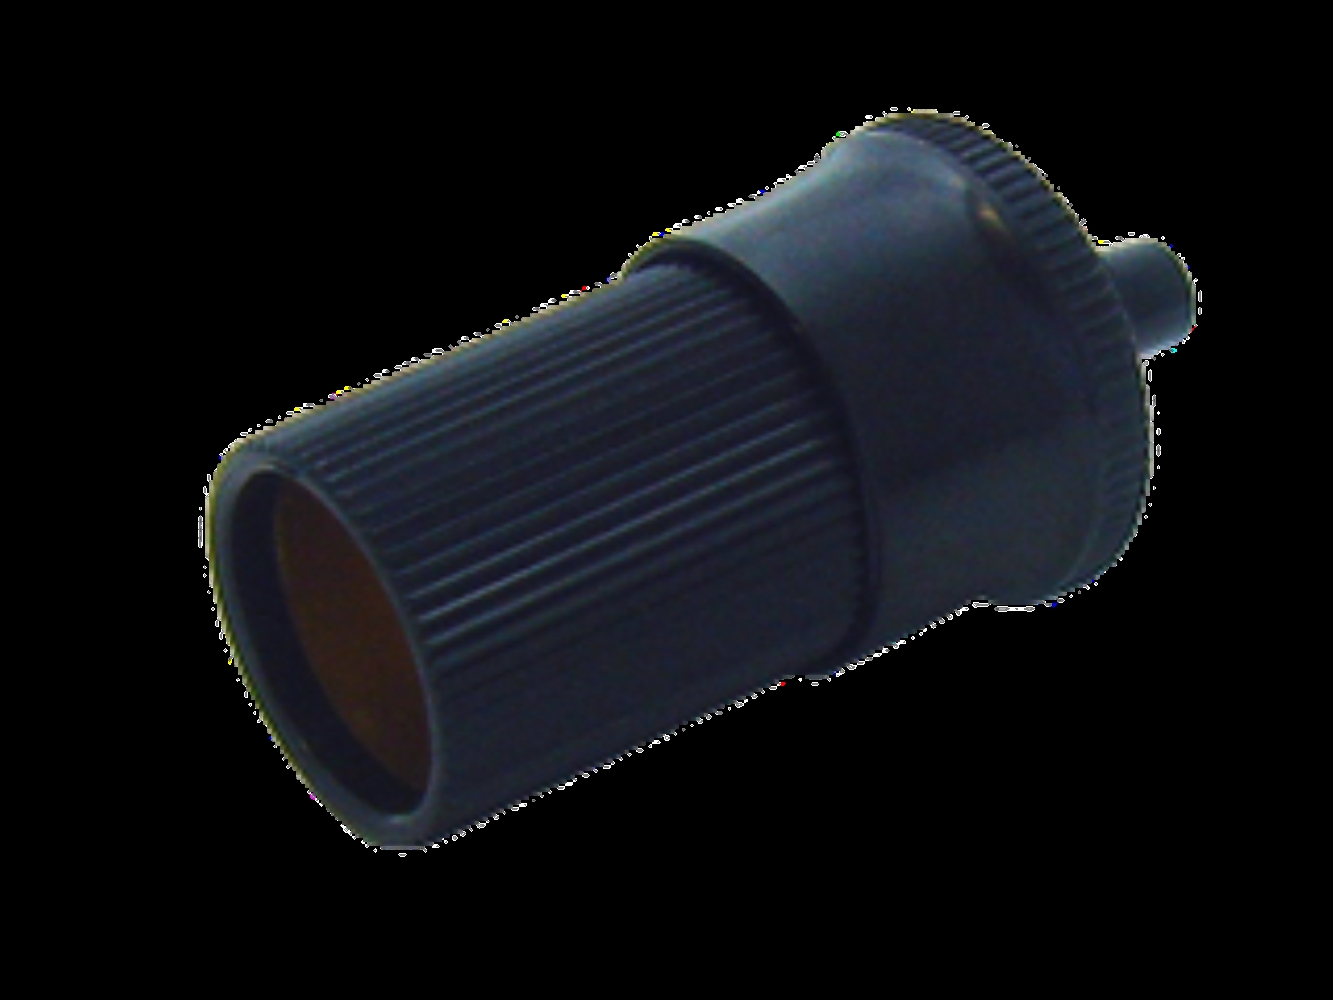 photo of Cigarette Lighter Adapter Plug, 38-CP-10F10A